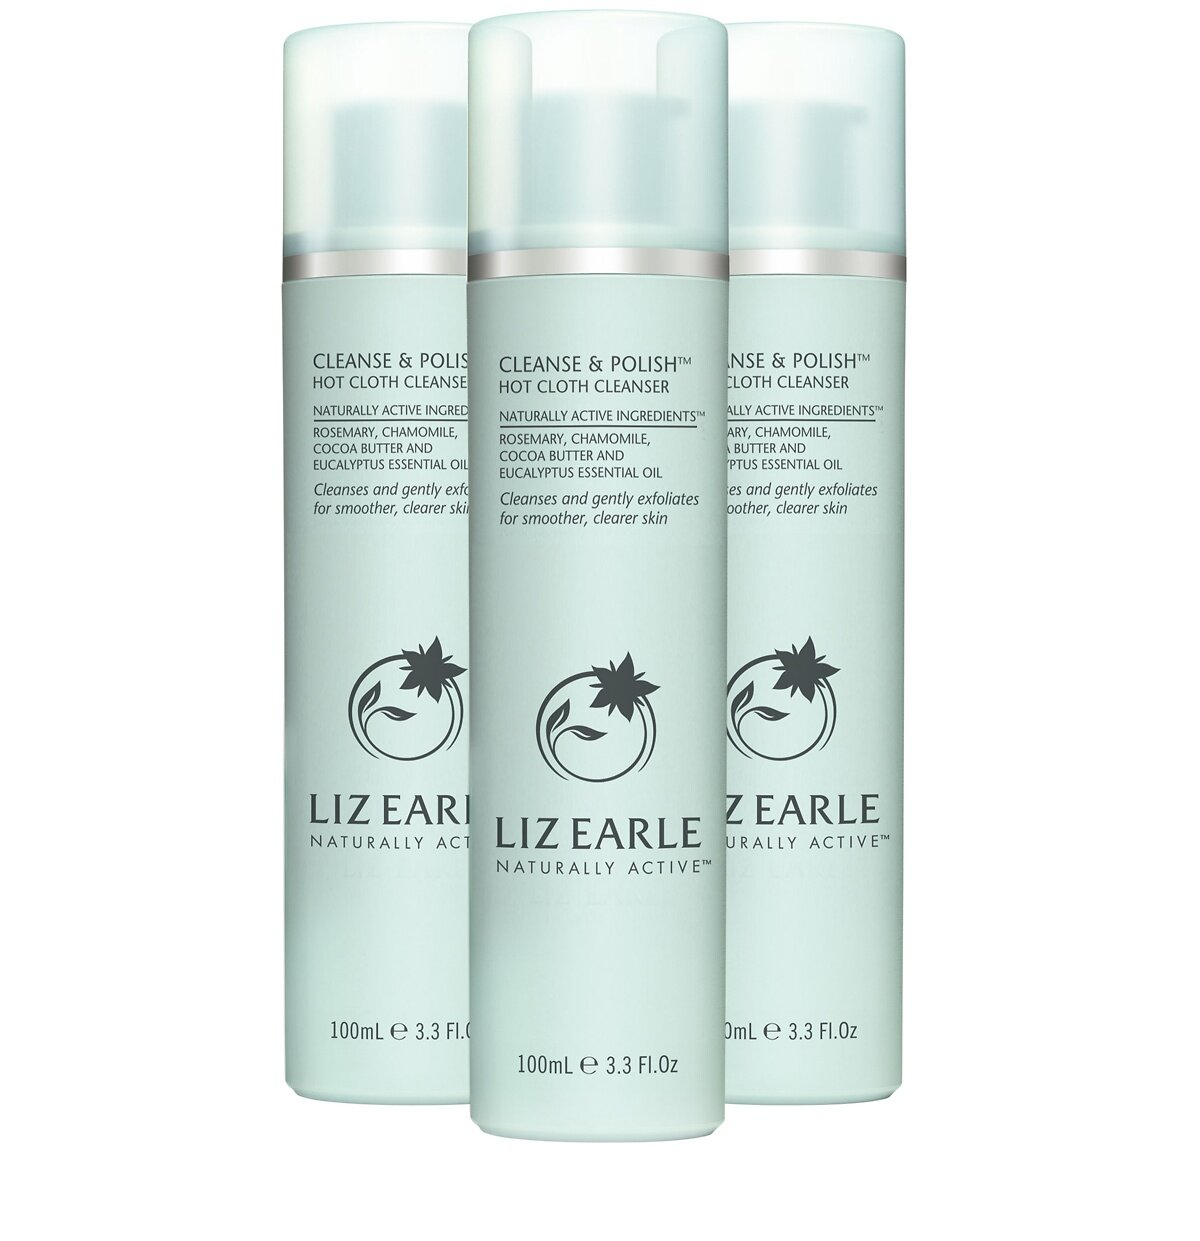 Liz Earle Cleanse and Polish Hot Cloth System